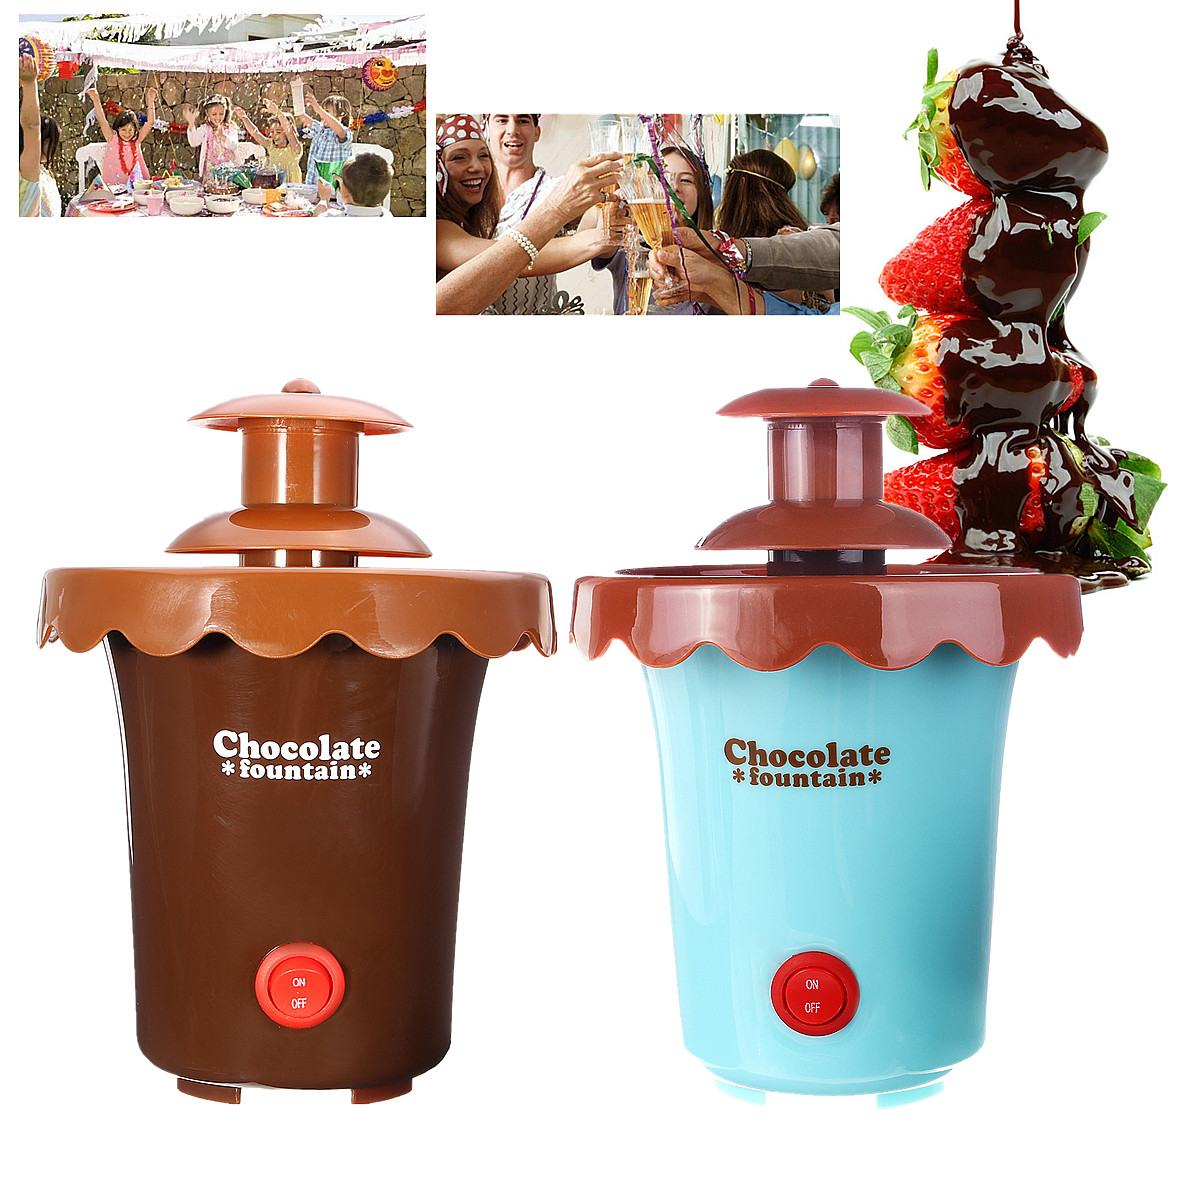 2 Tiers Mini Chocolate Fondue Maker Fountain Party Waterfall Melting Machine For Fruits Marshmallows Cookies Cake  Wedding Party